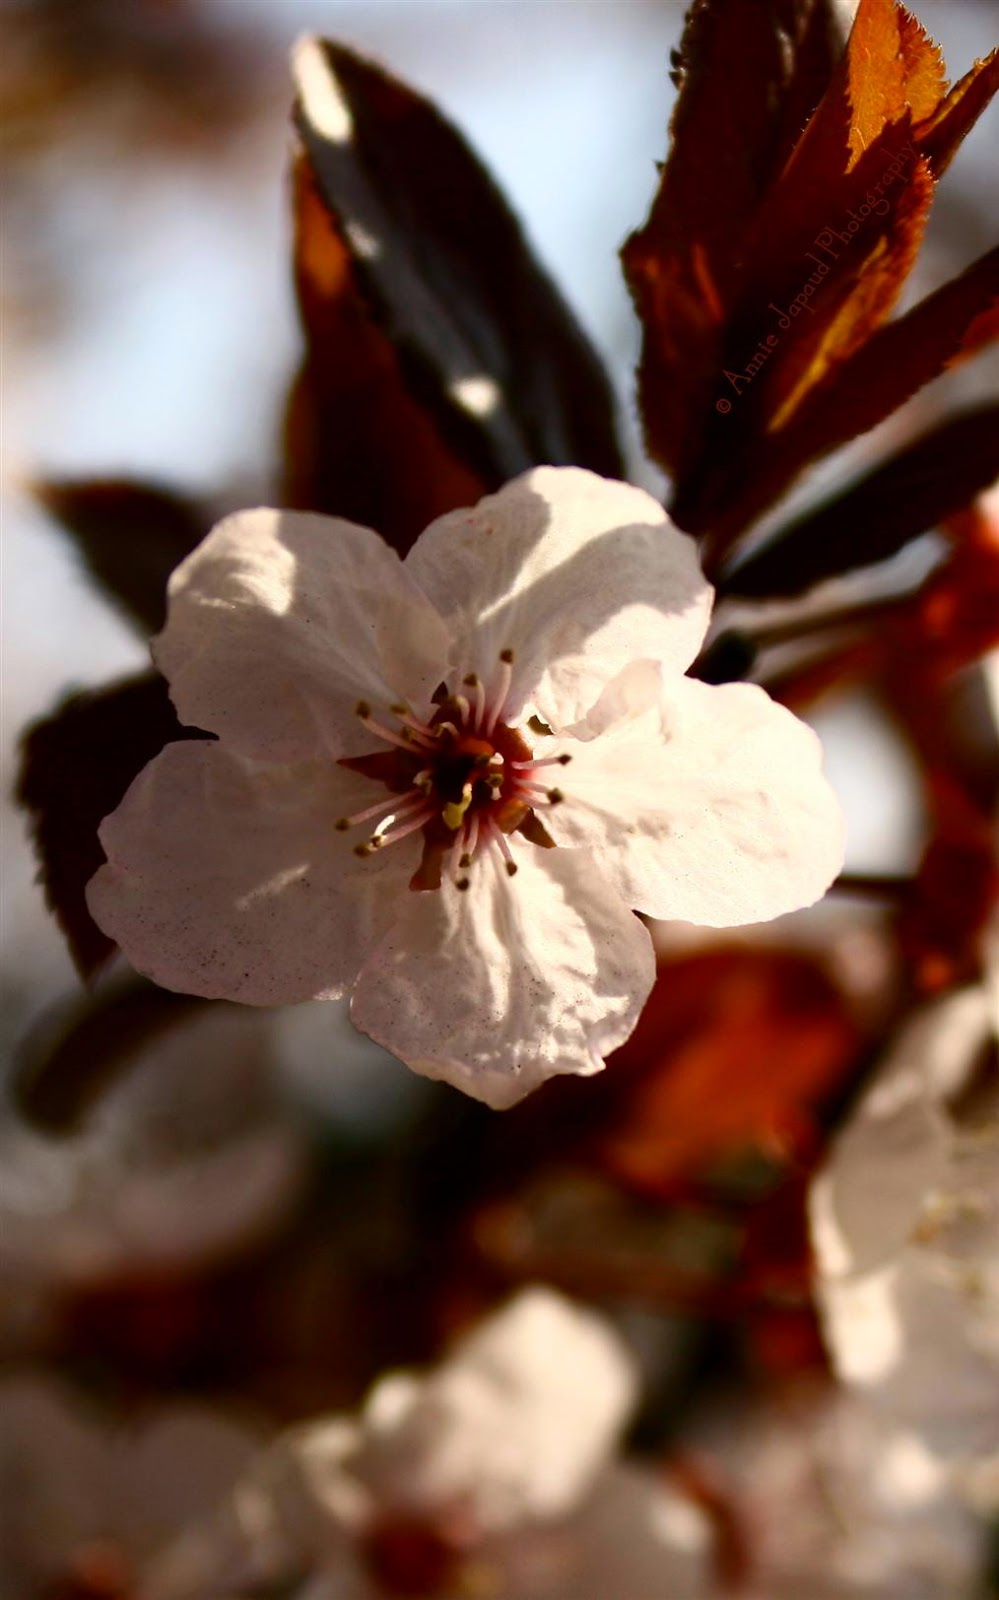 lovely image of a large white spring blossoms from up close